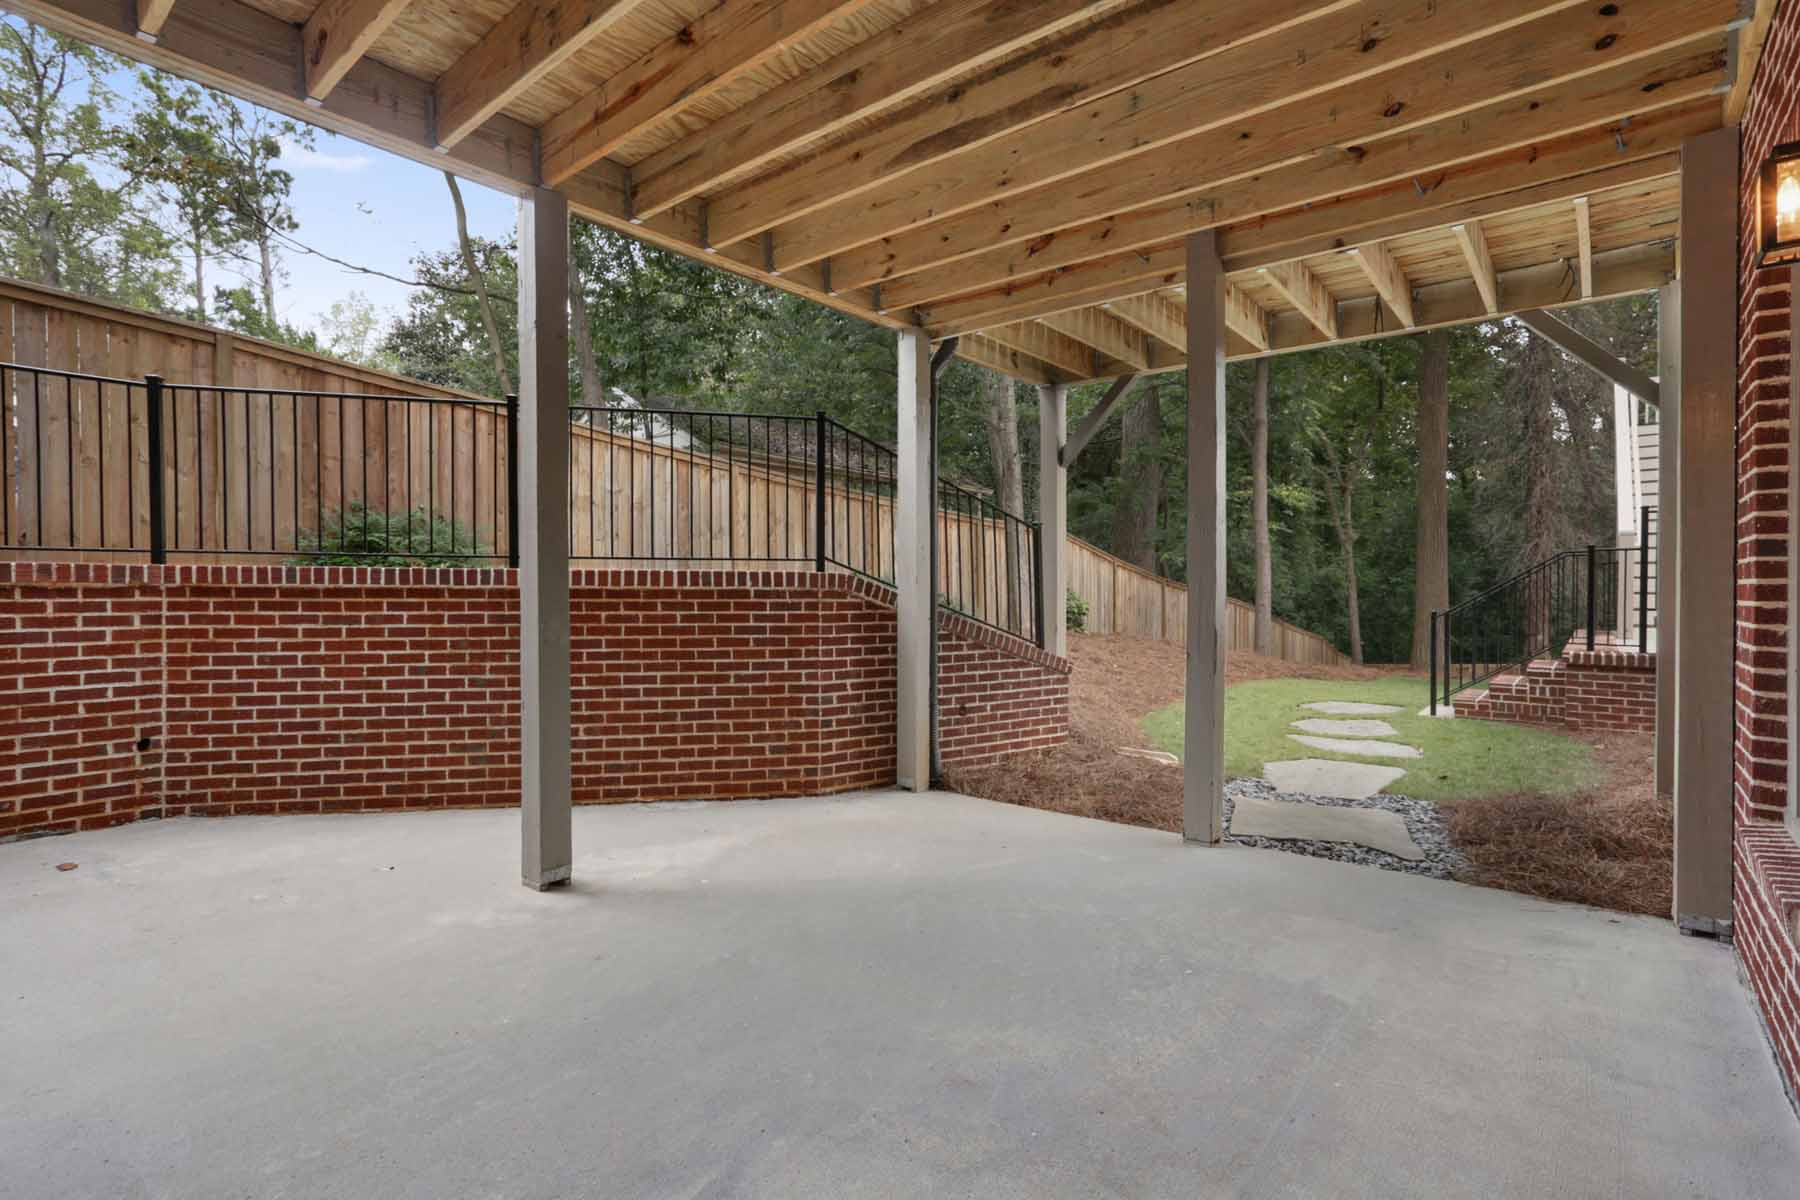 Additional photo for property listing at Gorgeous Newer Construction Brick Charmer  On an Oversized Lot in Morningside! 1361 Middlesex Ave Atlanta, Georgia 30306 United States